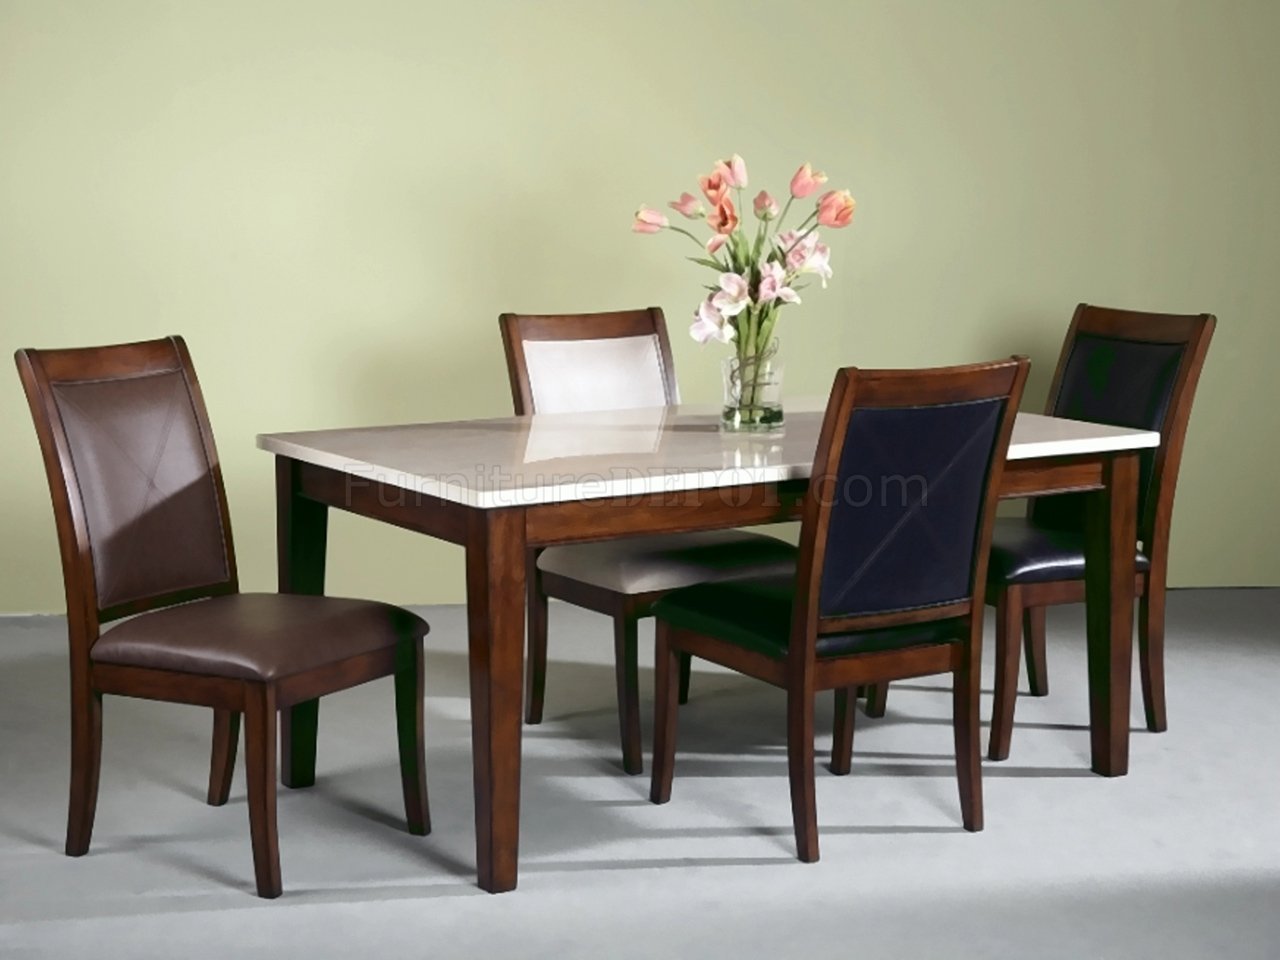 Light Marble Top Modern Dining Table W/Optional Chairs